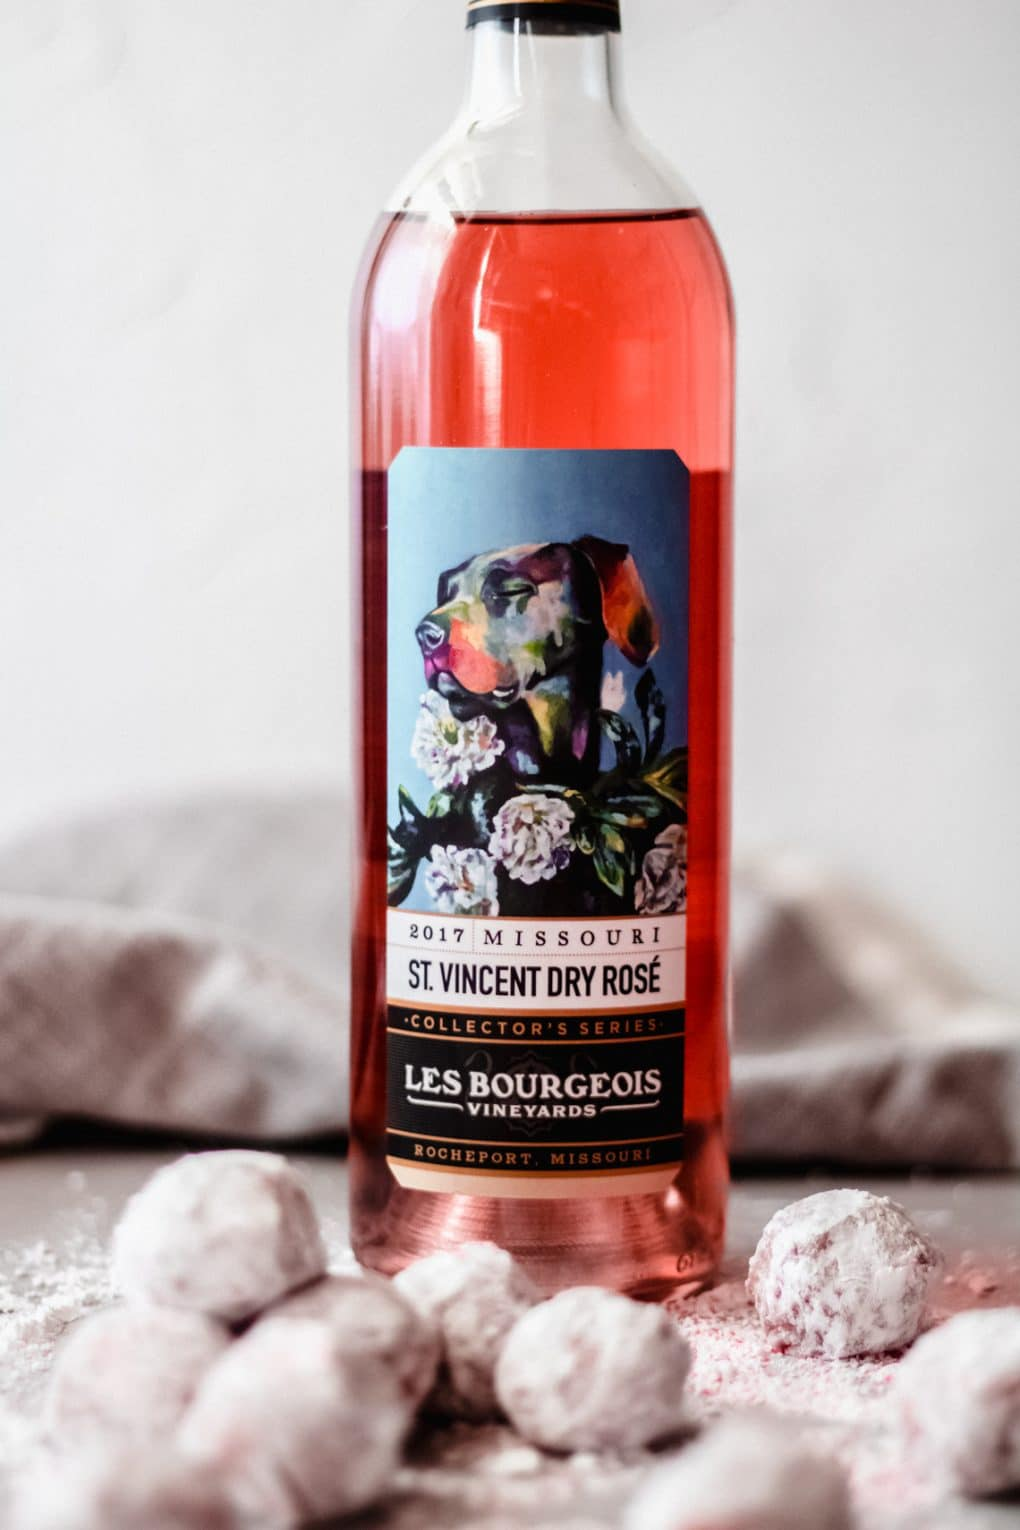 a bottle of St. Vincent Dry Rosé from Les Bourgeois winery